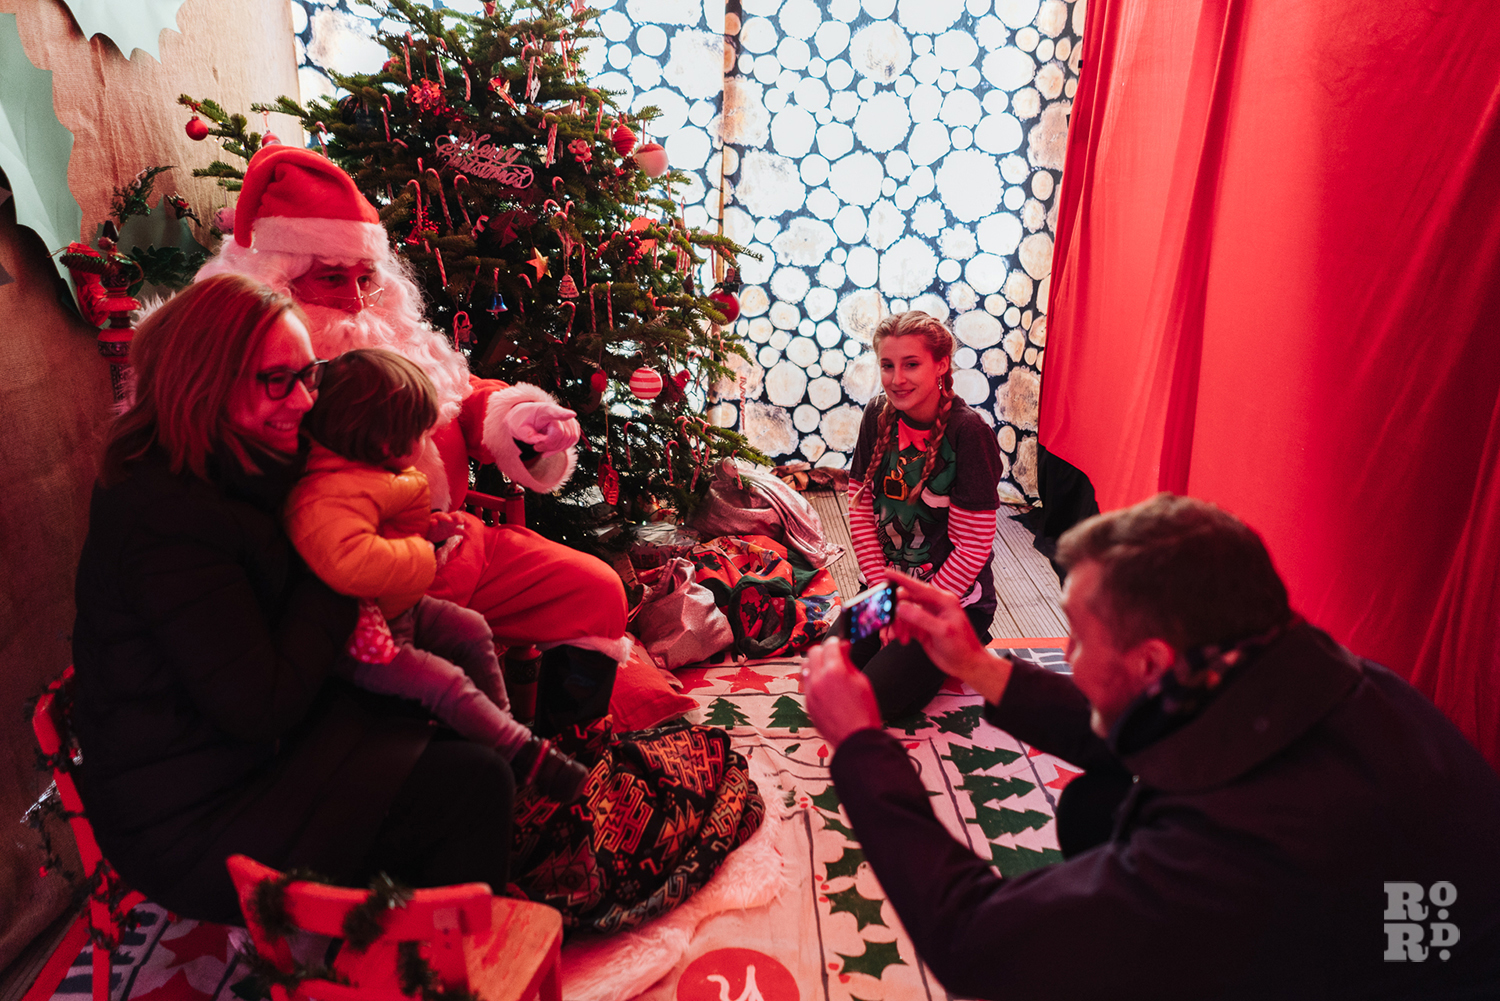 Child and parent being photographed at Santas' Grotto Roman Road Christmas Fair 2016 © Roman Koblov